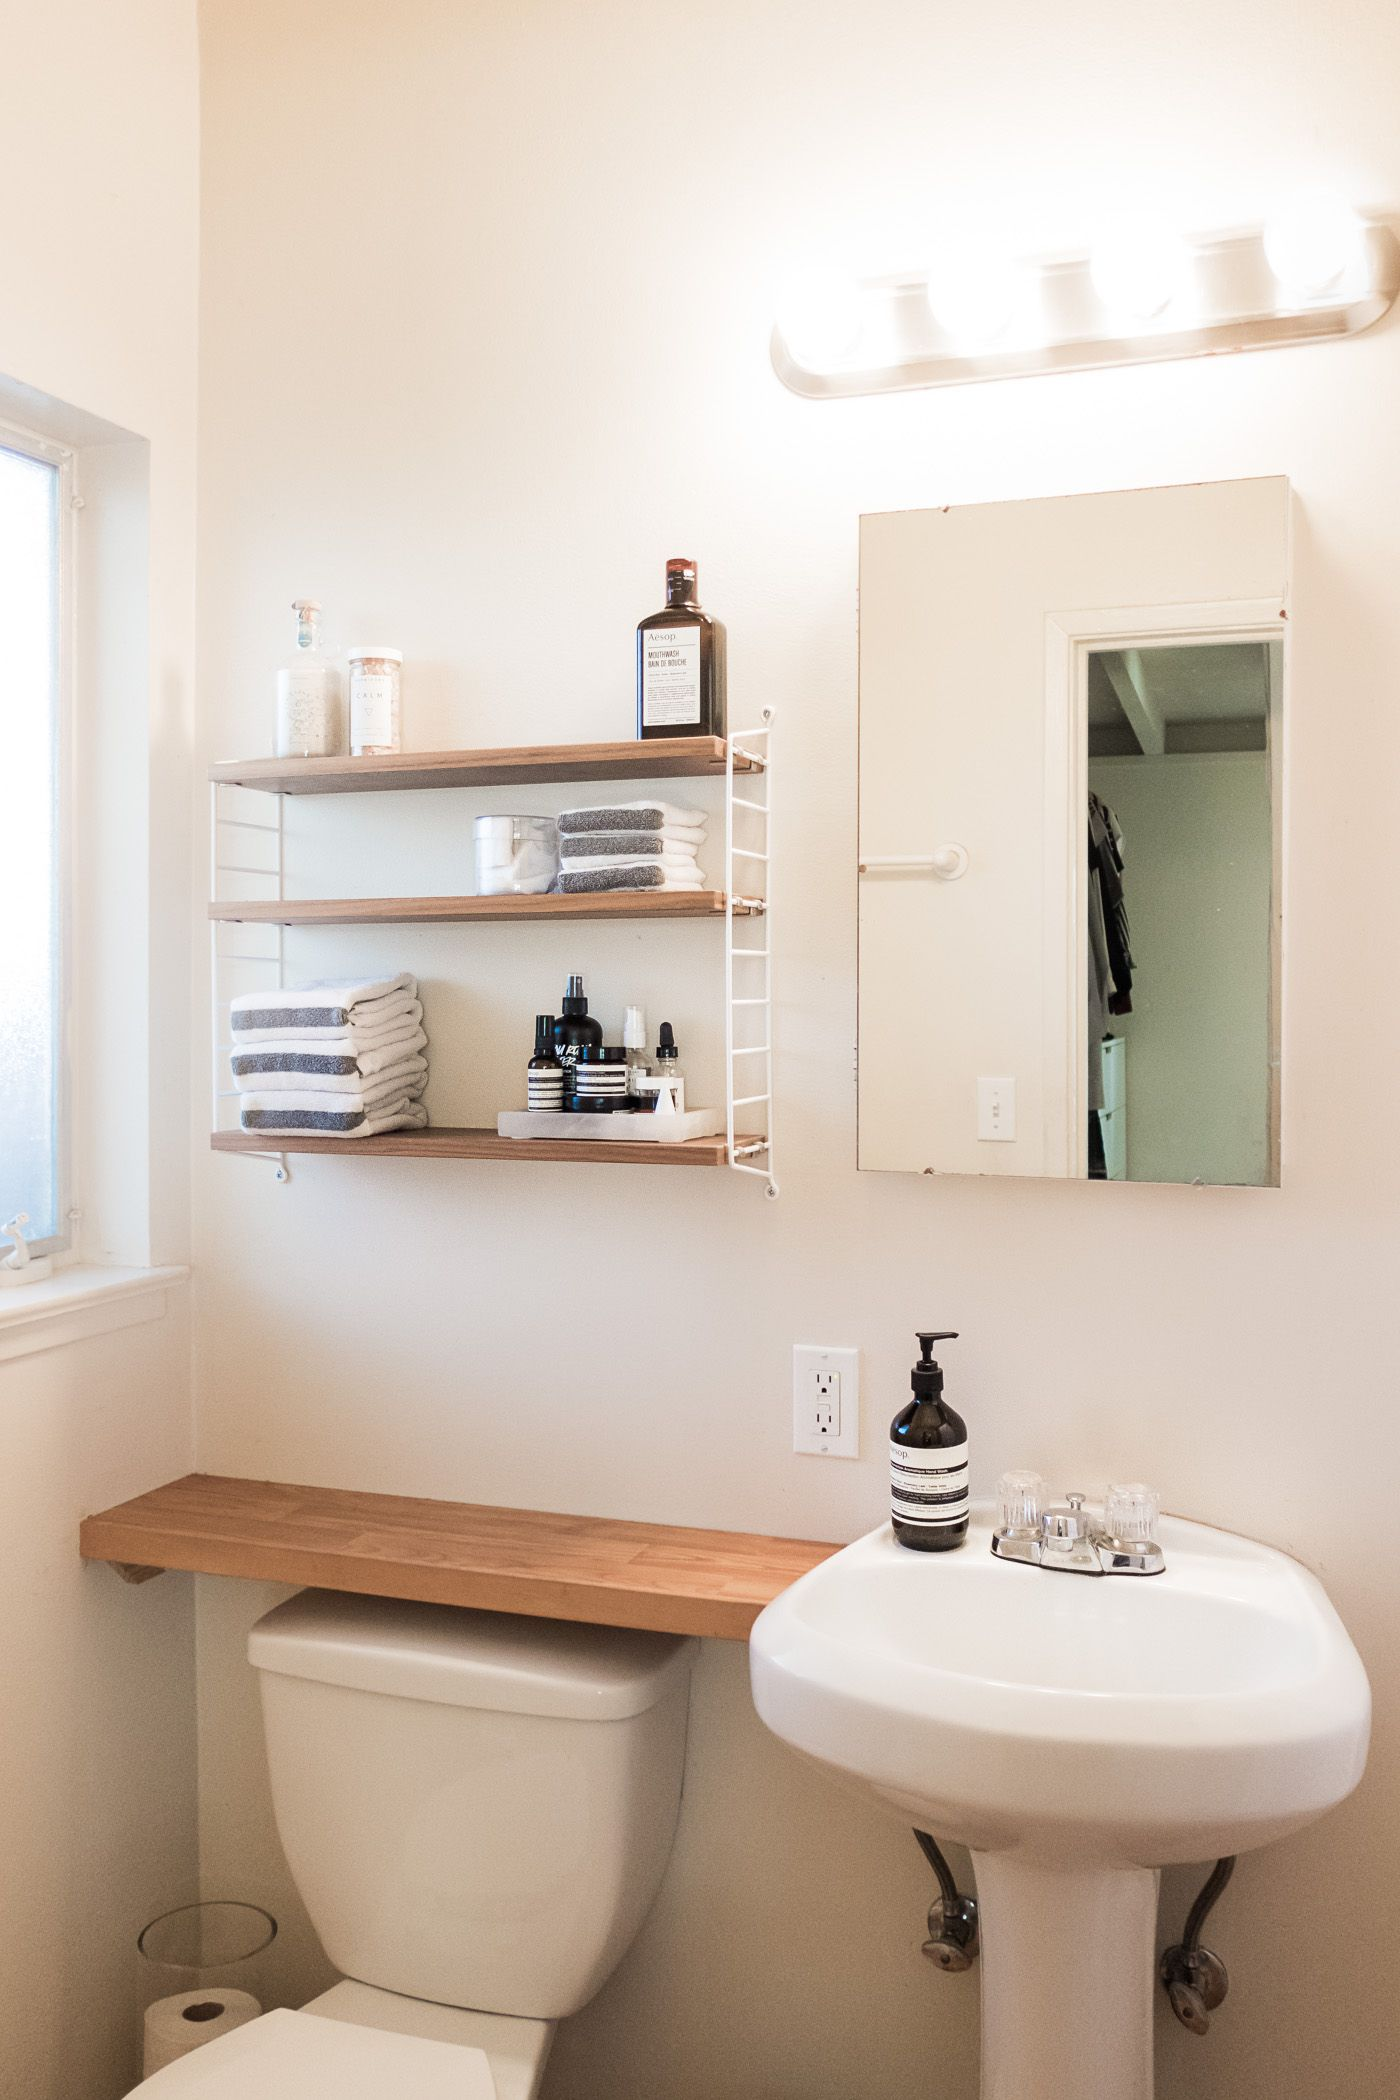 Small Space Bathroom Tips - 11 ways to clear clutter and 20 tips for ...